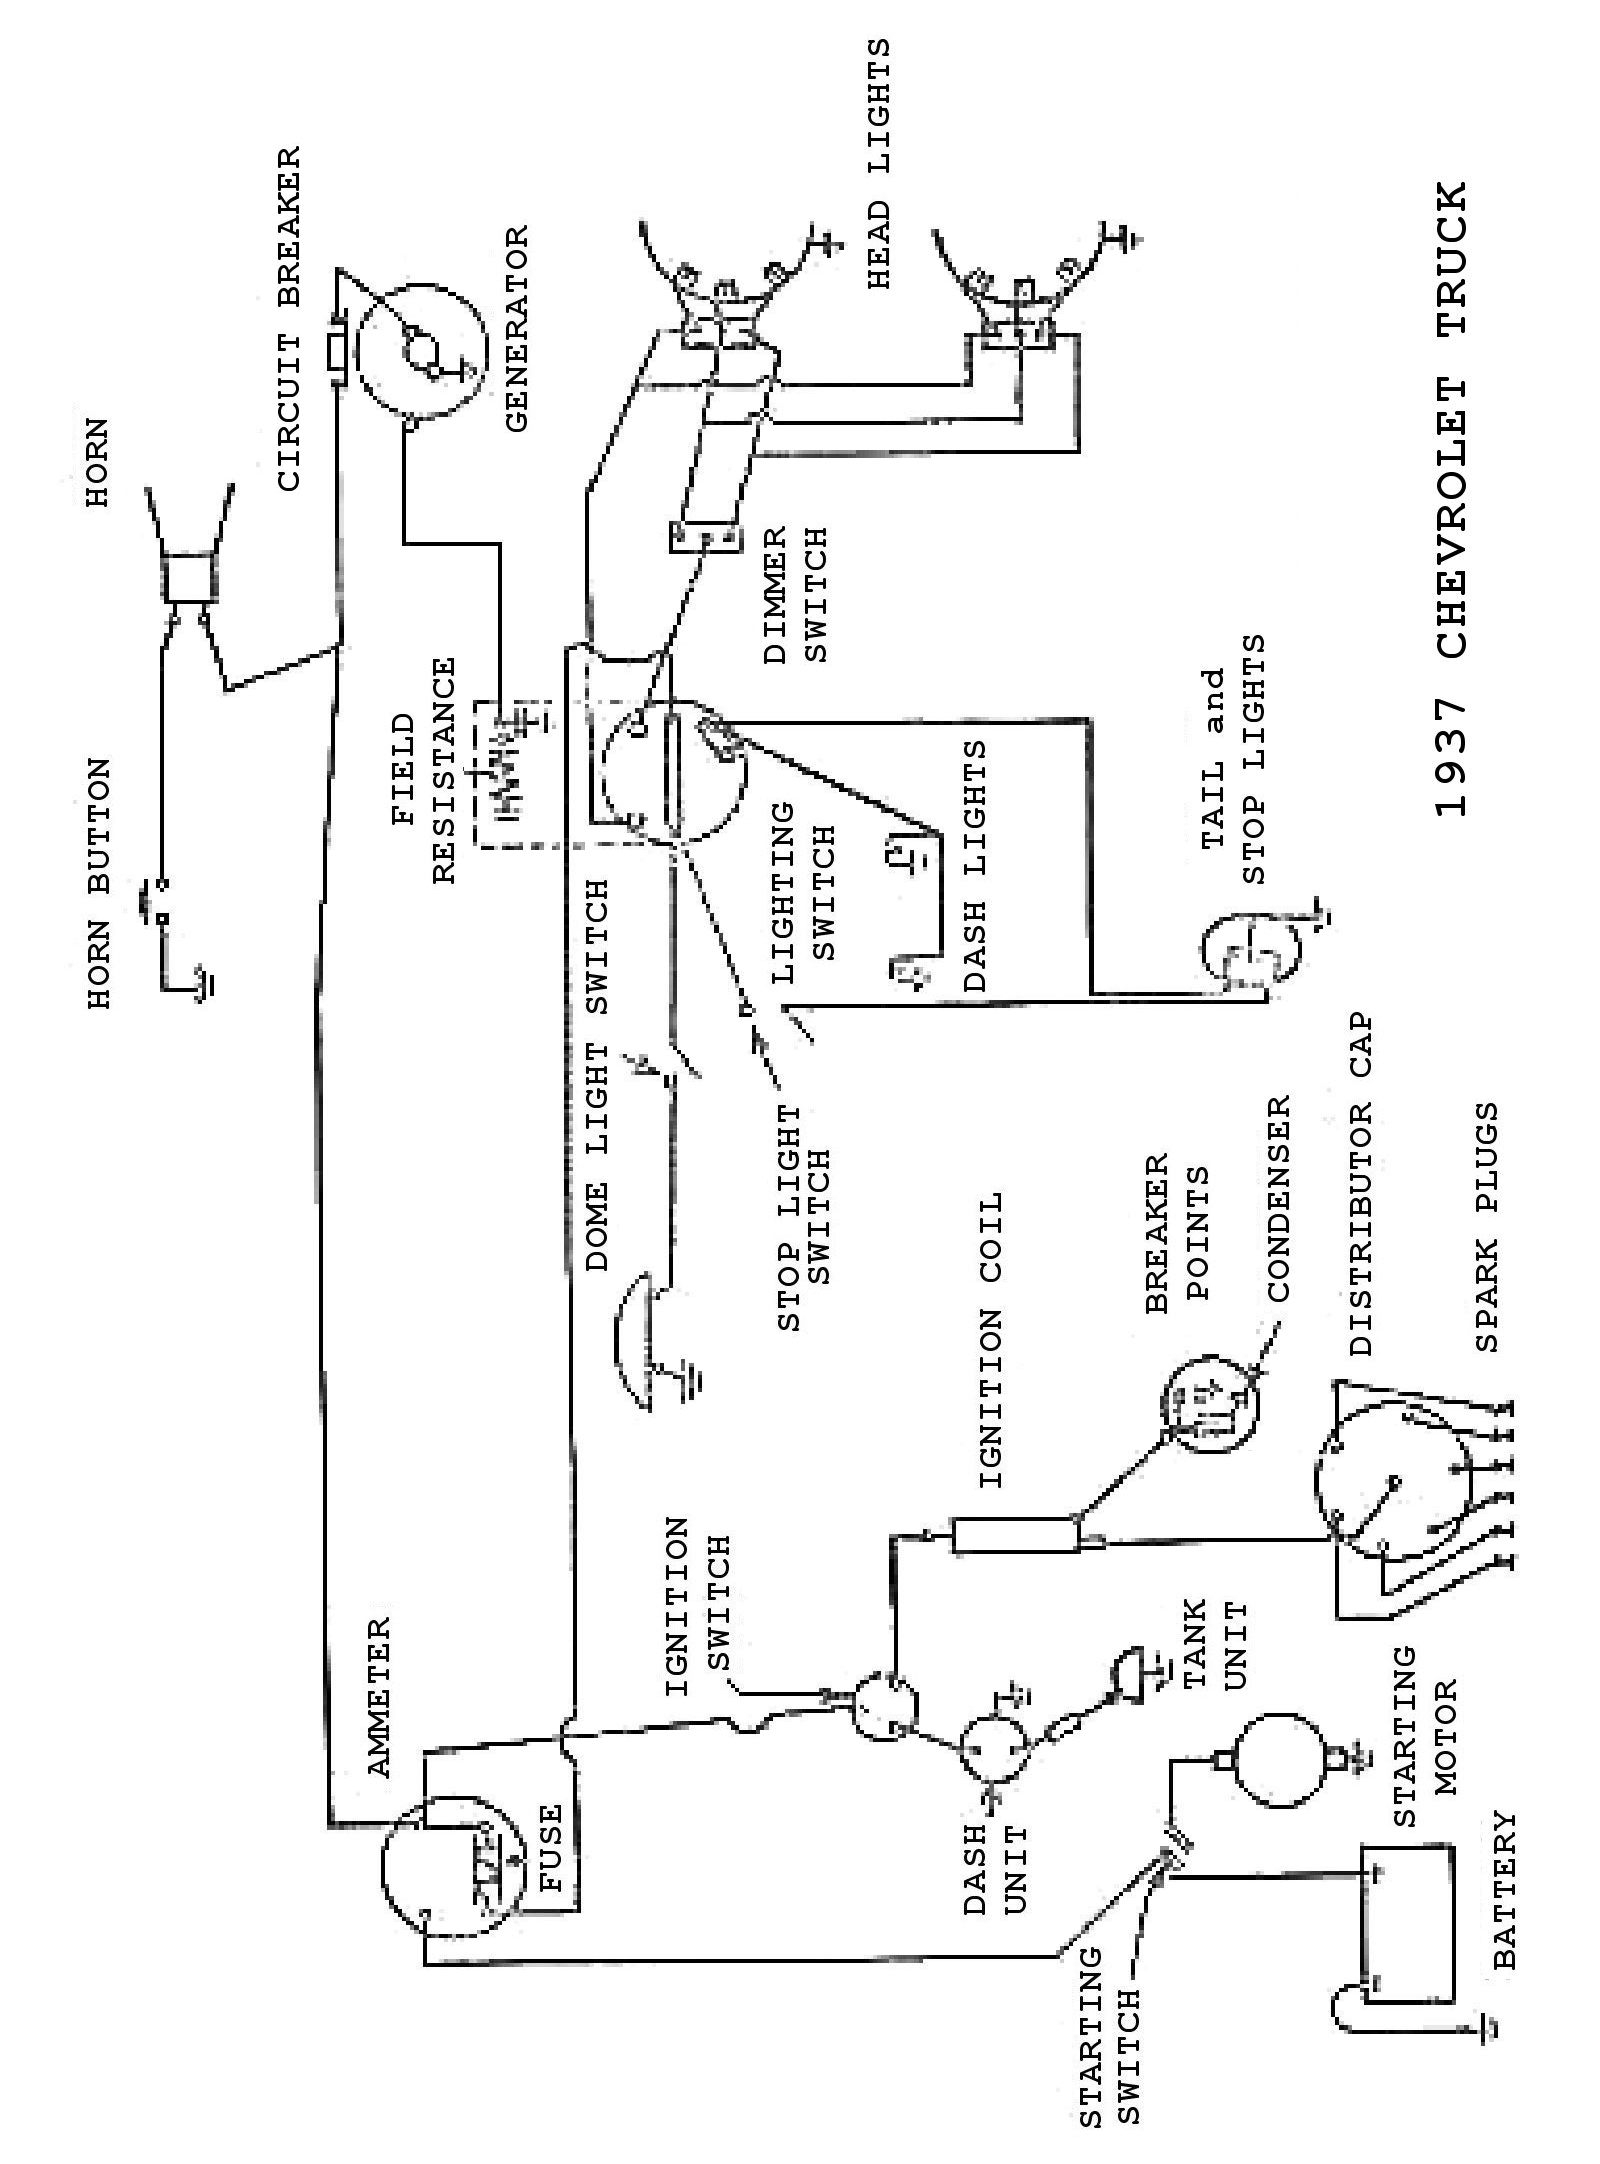 Spark Plug Wiring Diagram Chevy Chevrolet Truck Wiring Diagram With Dimmer Switch And Spark Rh Videojourneysrentals Spark Plug Wire Diagram Ford Firing Order Diagram I together with Original also Pic X additionally Fuse Box For Mitsubishi Galant Mitsubishi Galant Under Throughout Mitsubishi Galant Fuse Box Diagram moreover Open Hood. on 2003 dodge grand caravan fuse box diagram